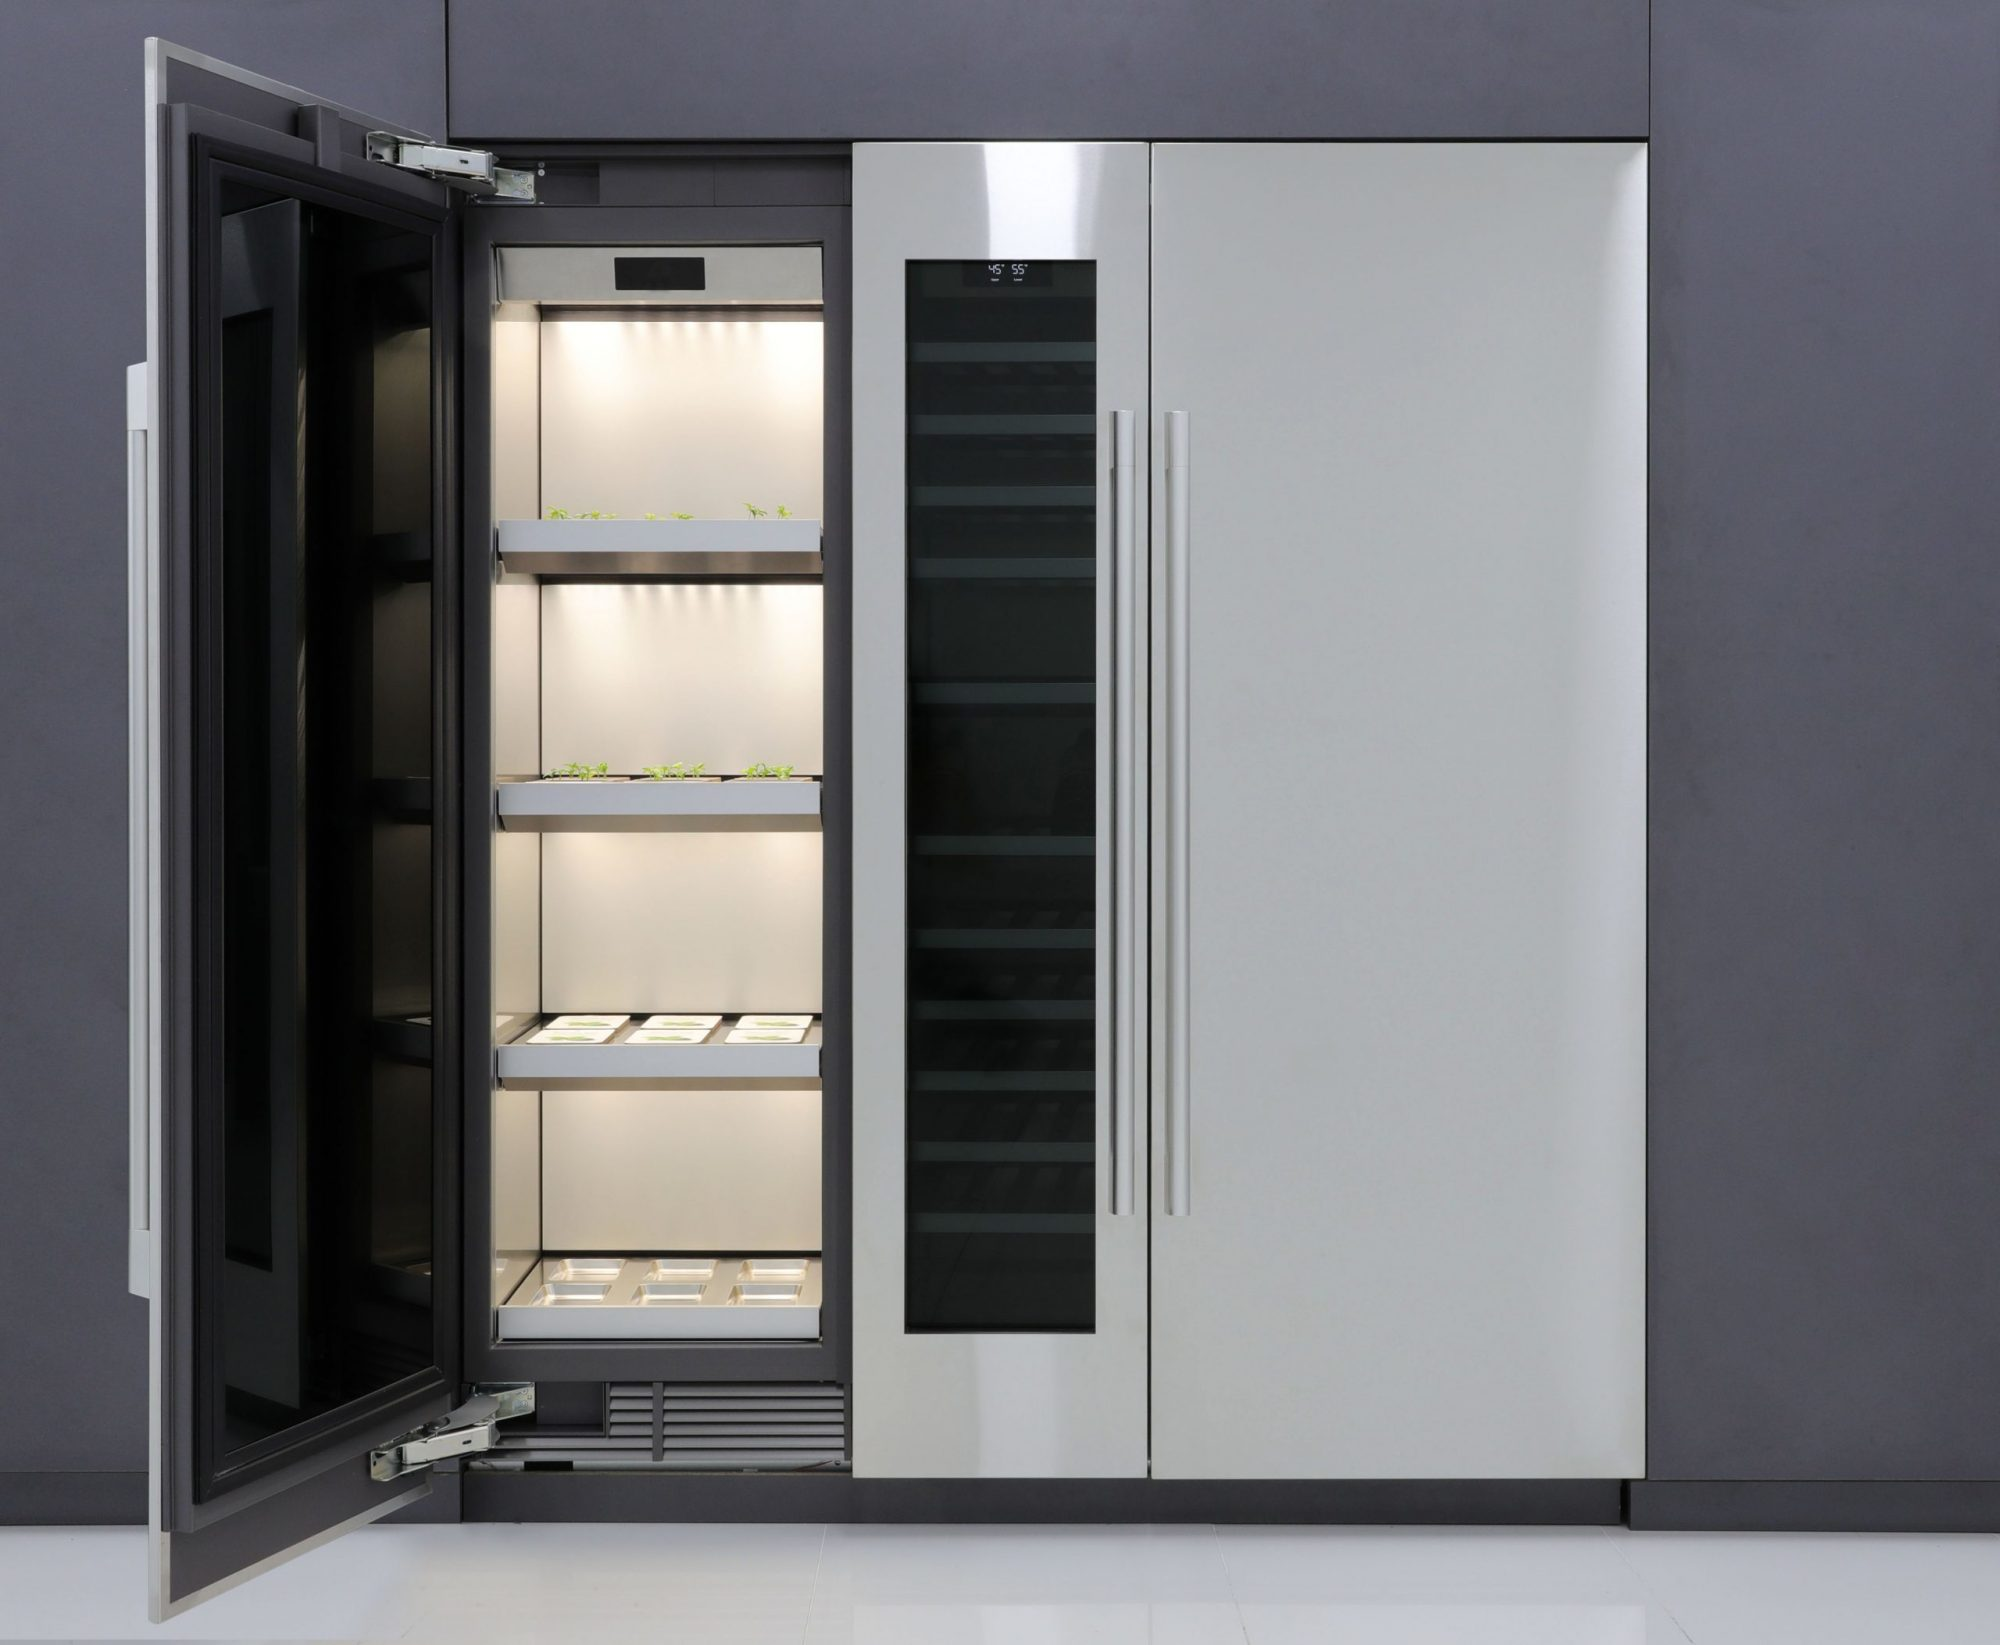 LG's New Refrigerator Will Grow Your Leafy Greens and Herbs for You